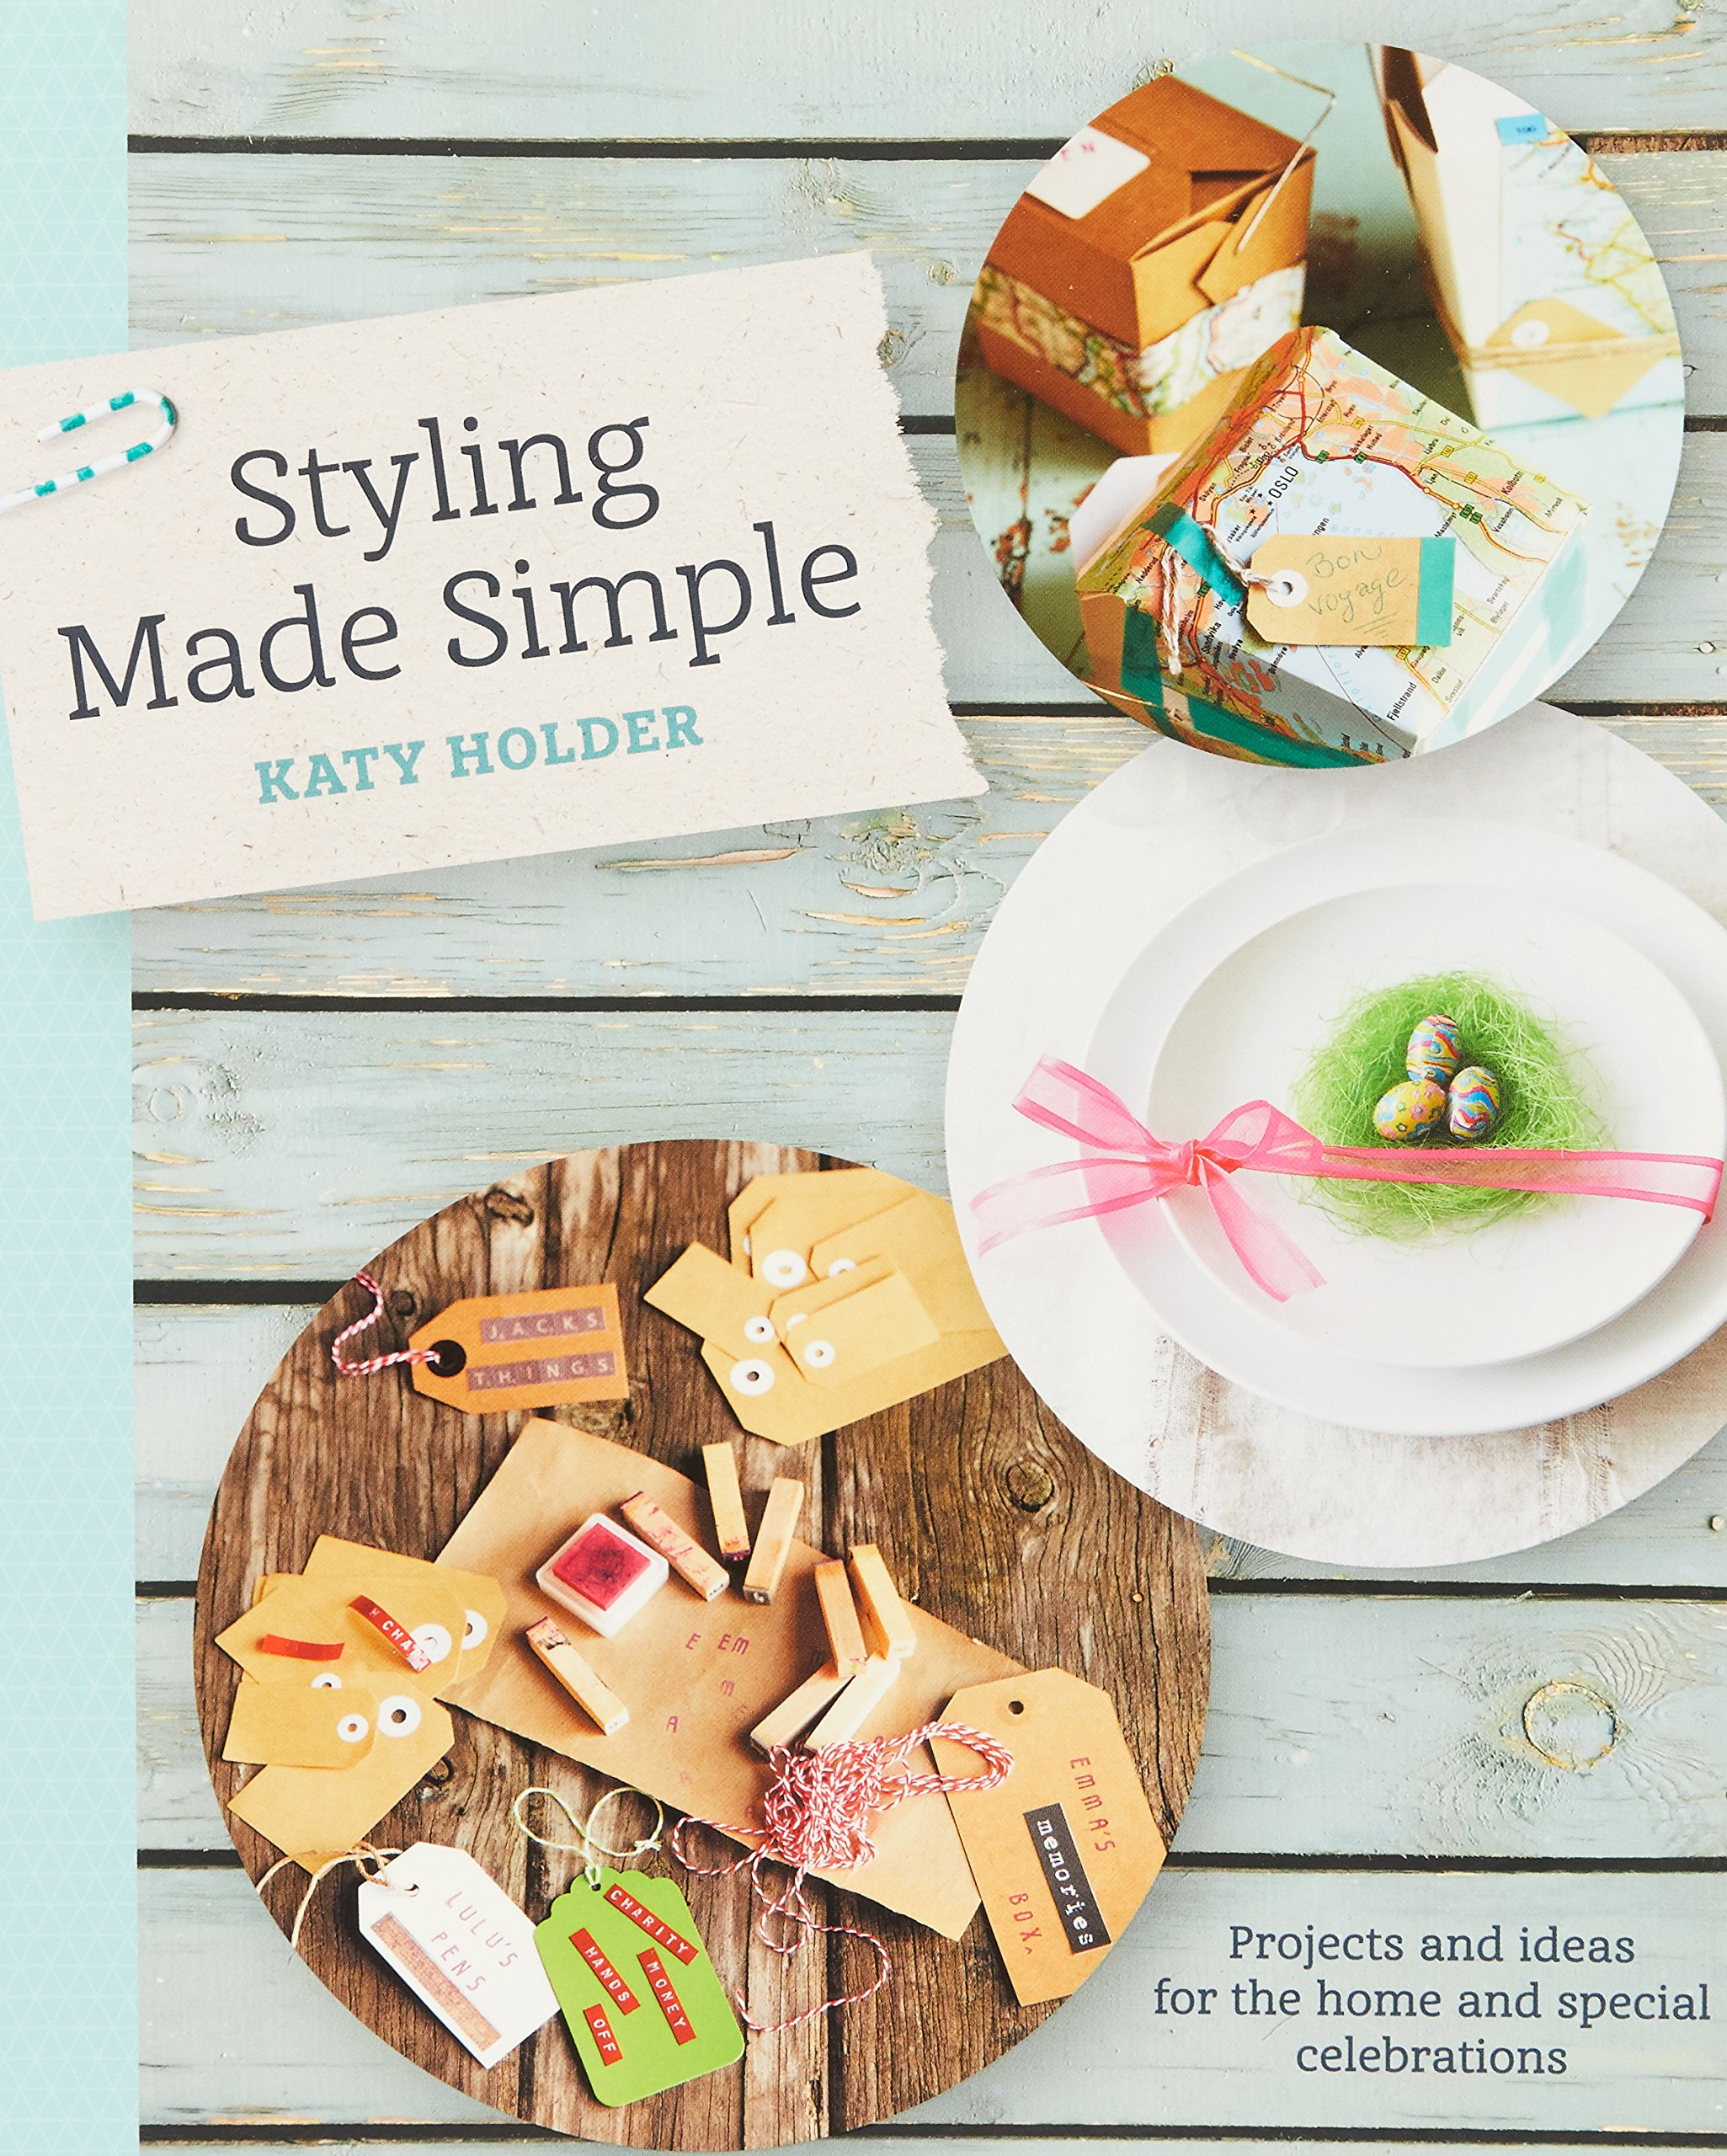 Amazon.com: Styling Made Simple: Projects and ideas for the home and ...